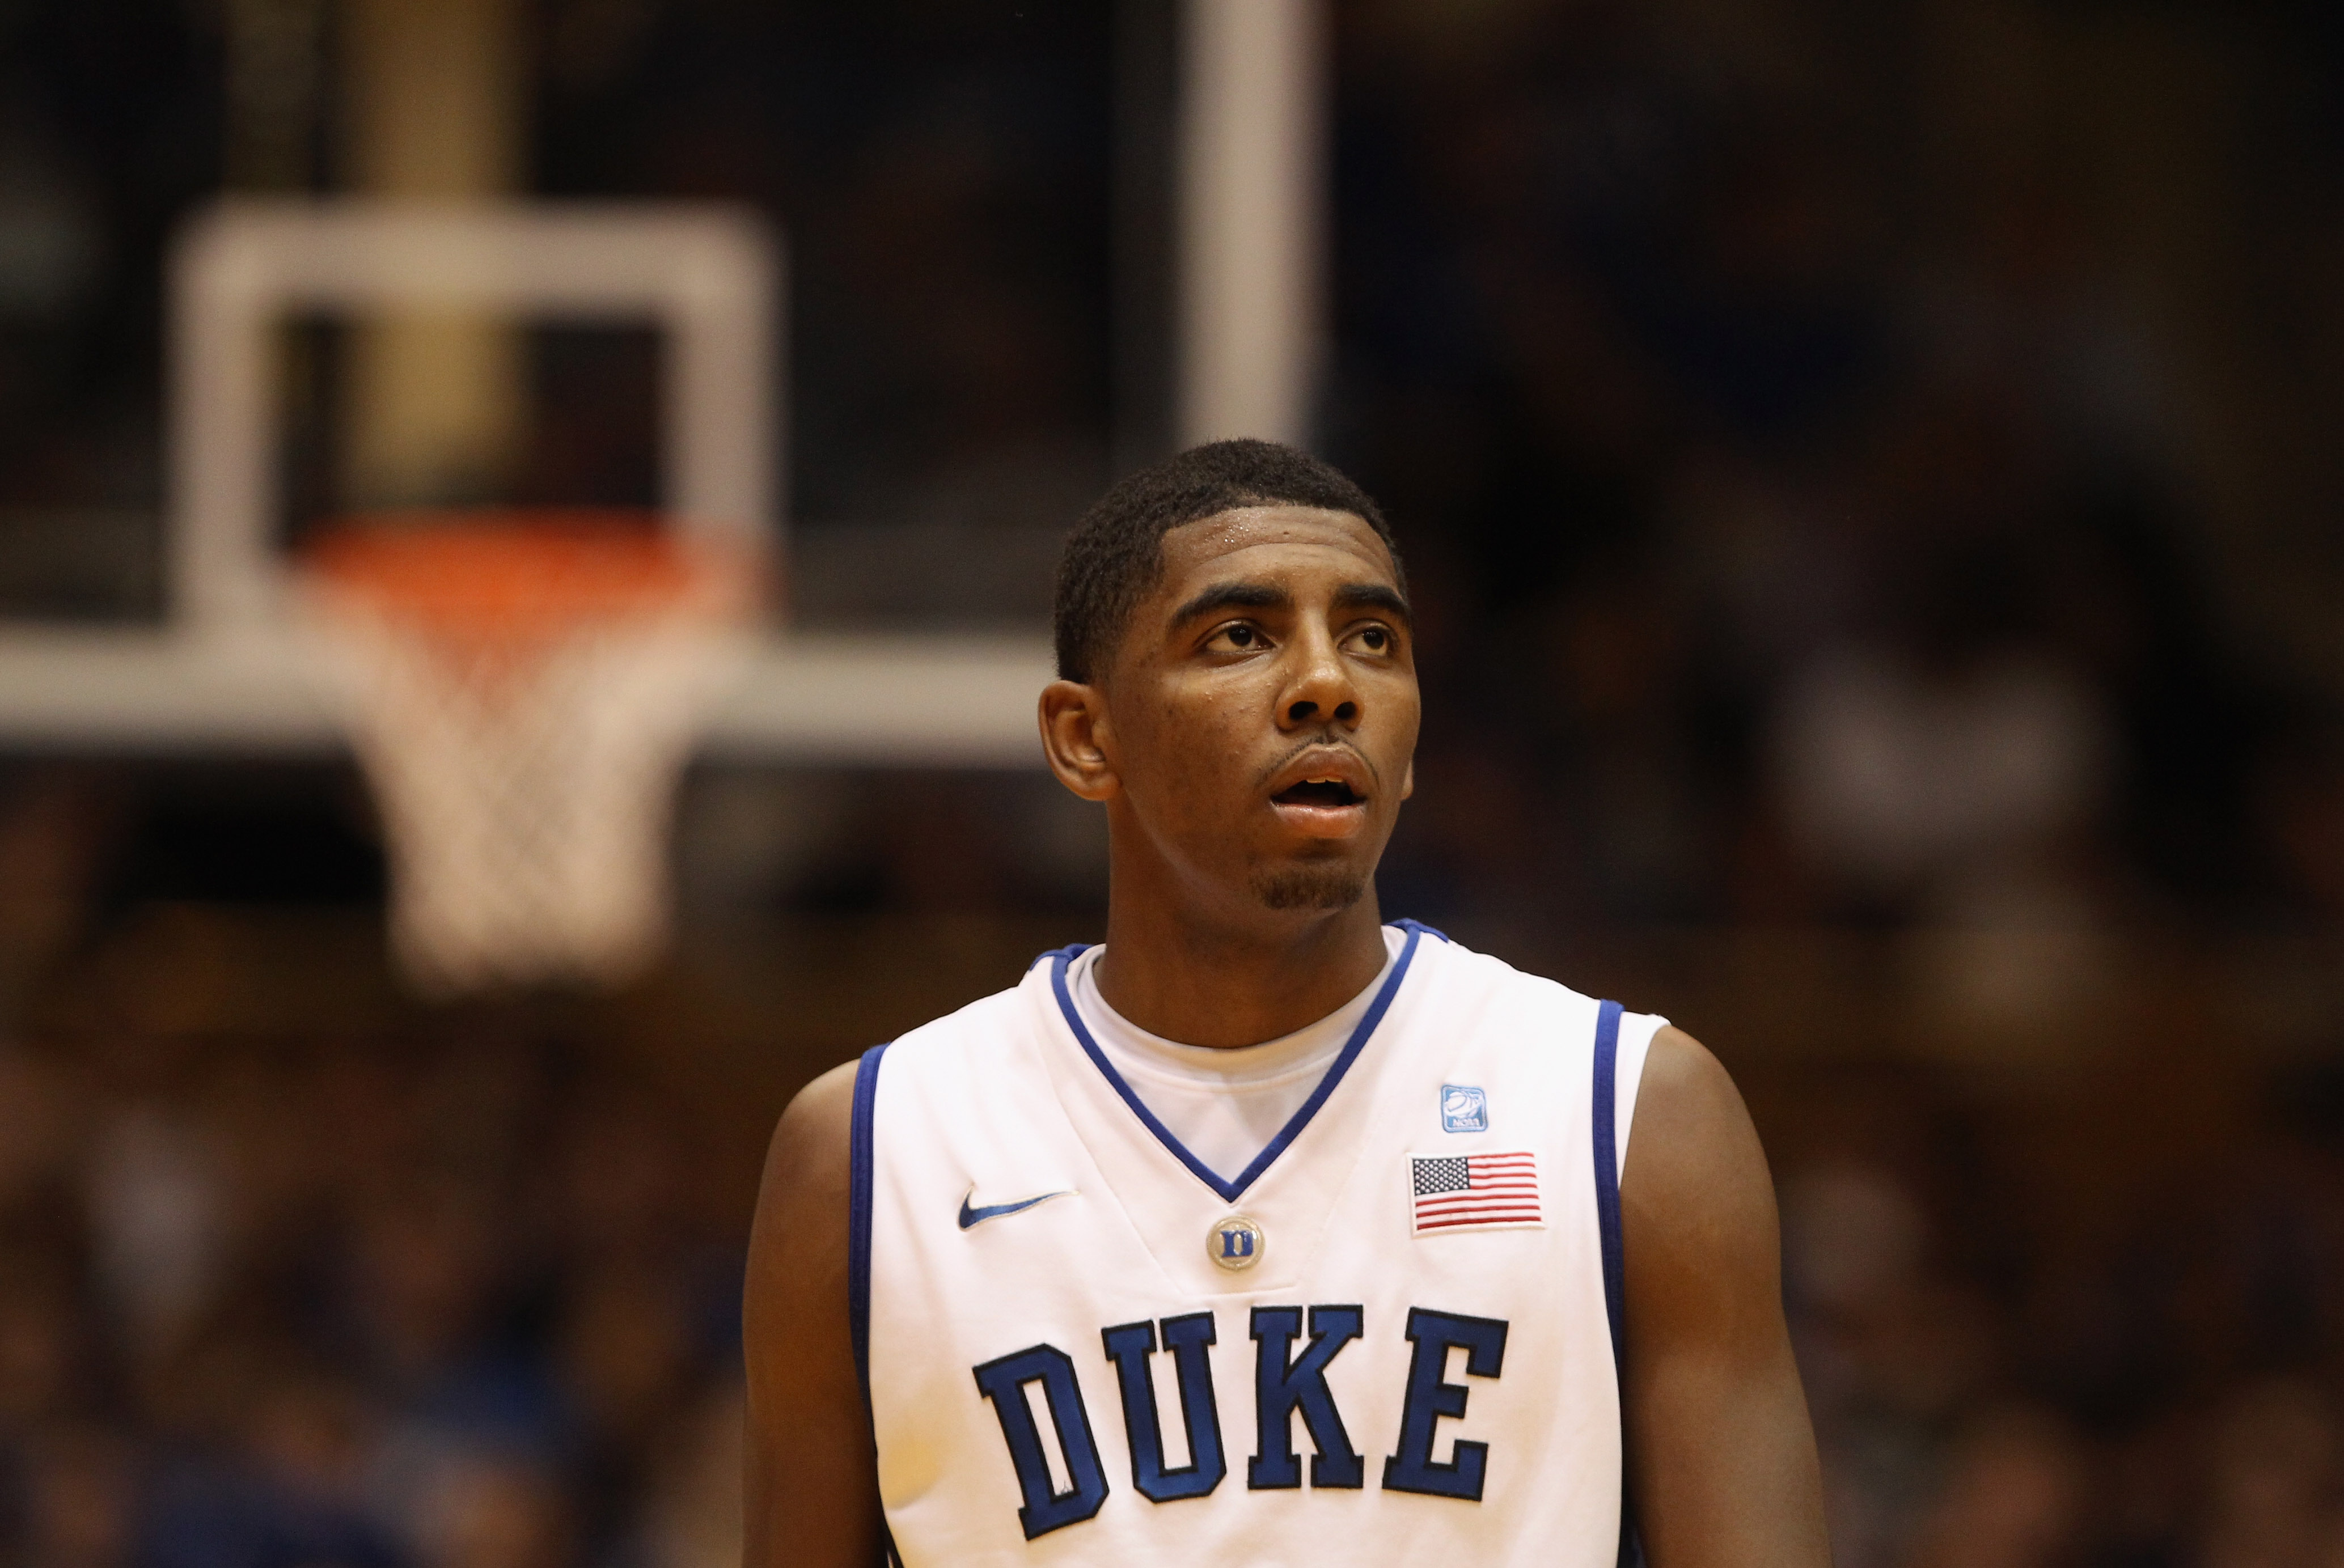 DURHAM, NC - DECEMBER 01:  Kyrie Irving #1 of the Duke Blue Devils watches on during their game against the Michigan State Spartans at Cameron Indoor Stadium on December 1, 2010 in Durham, North Carolina.  (Photo by Streeter Lecka/Getty Images)